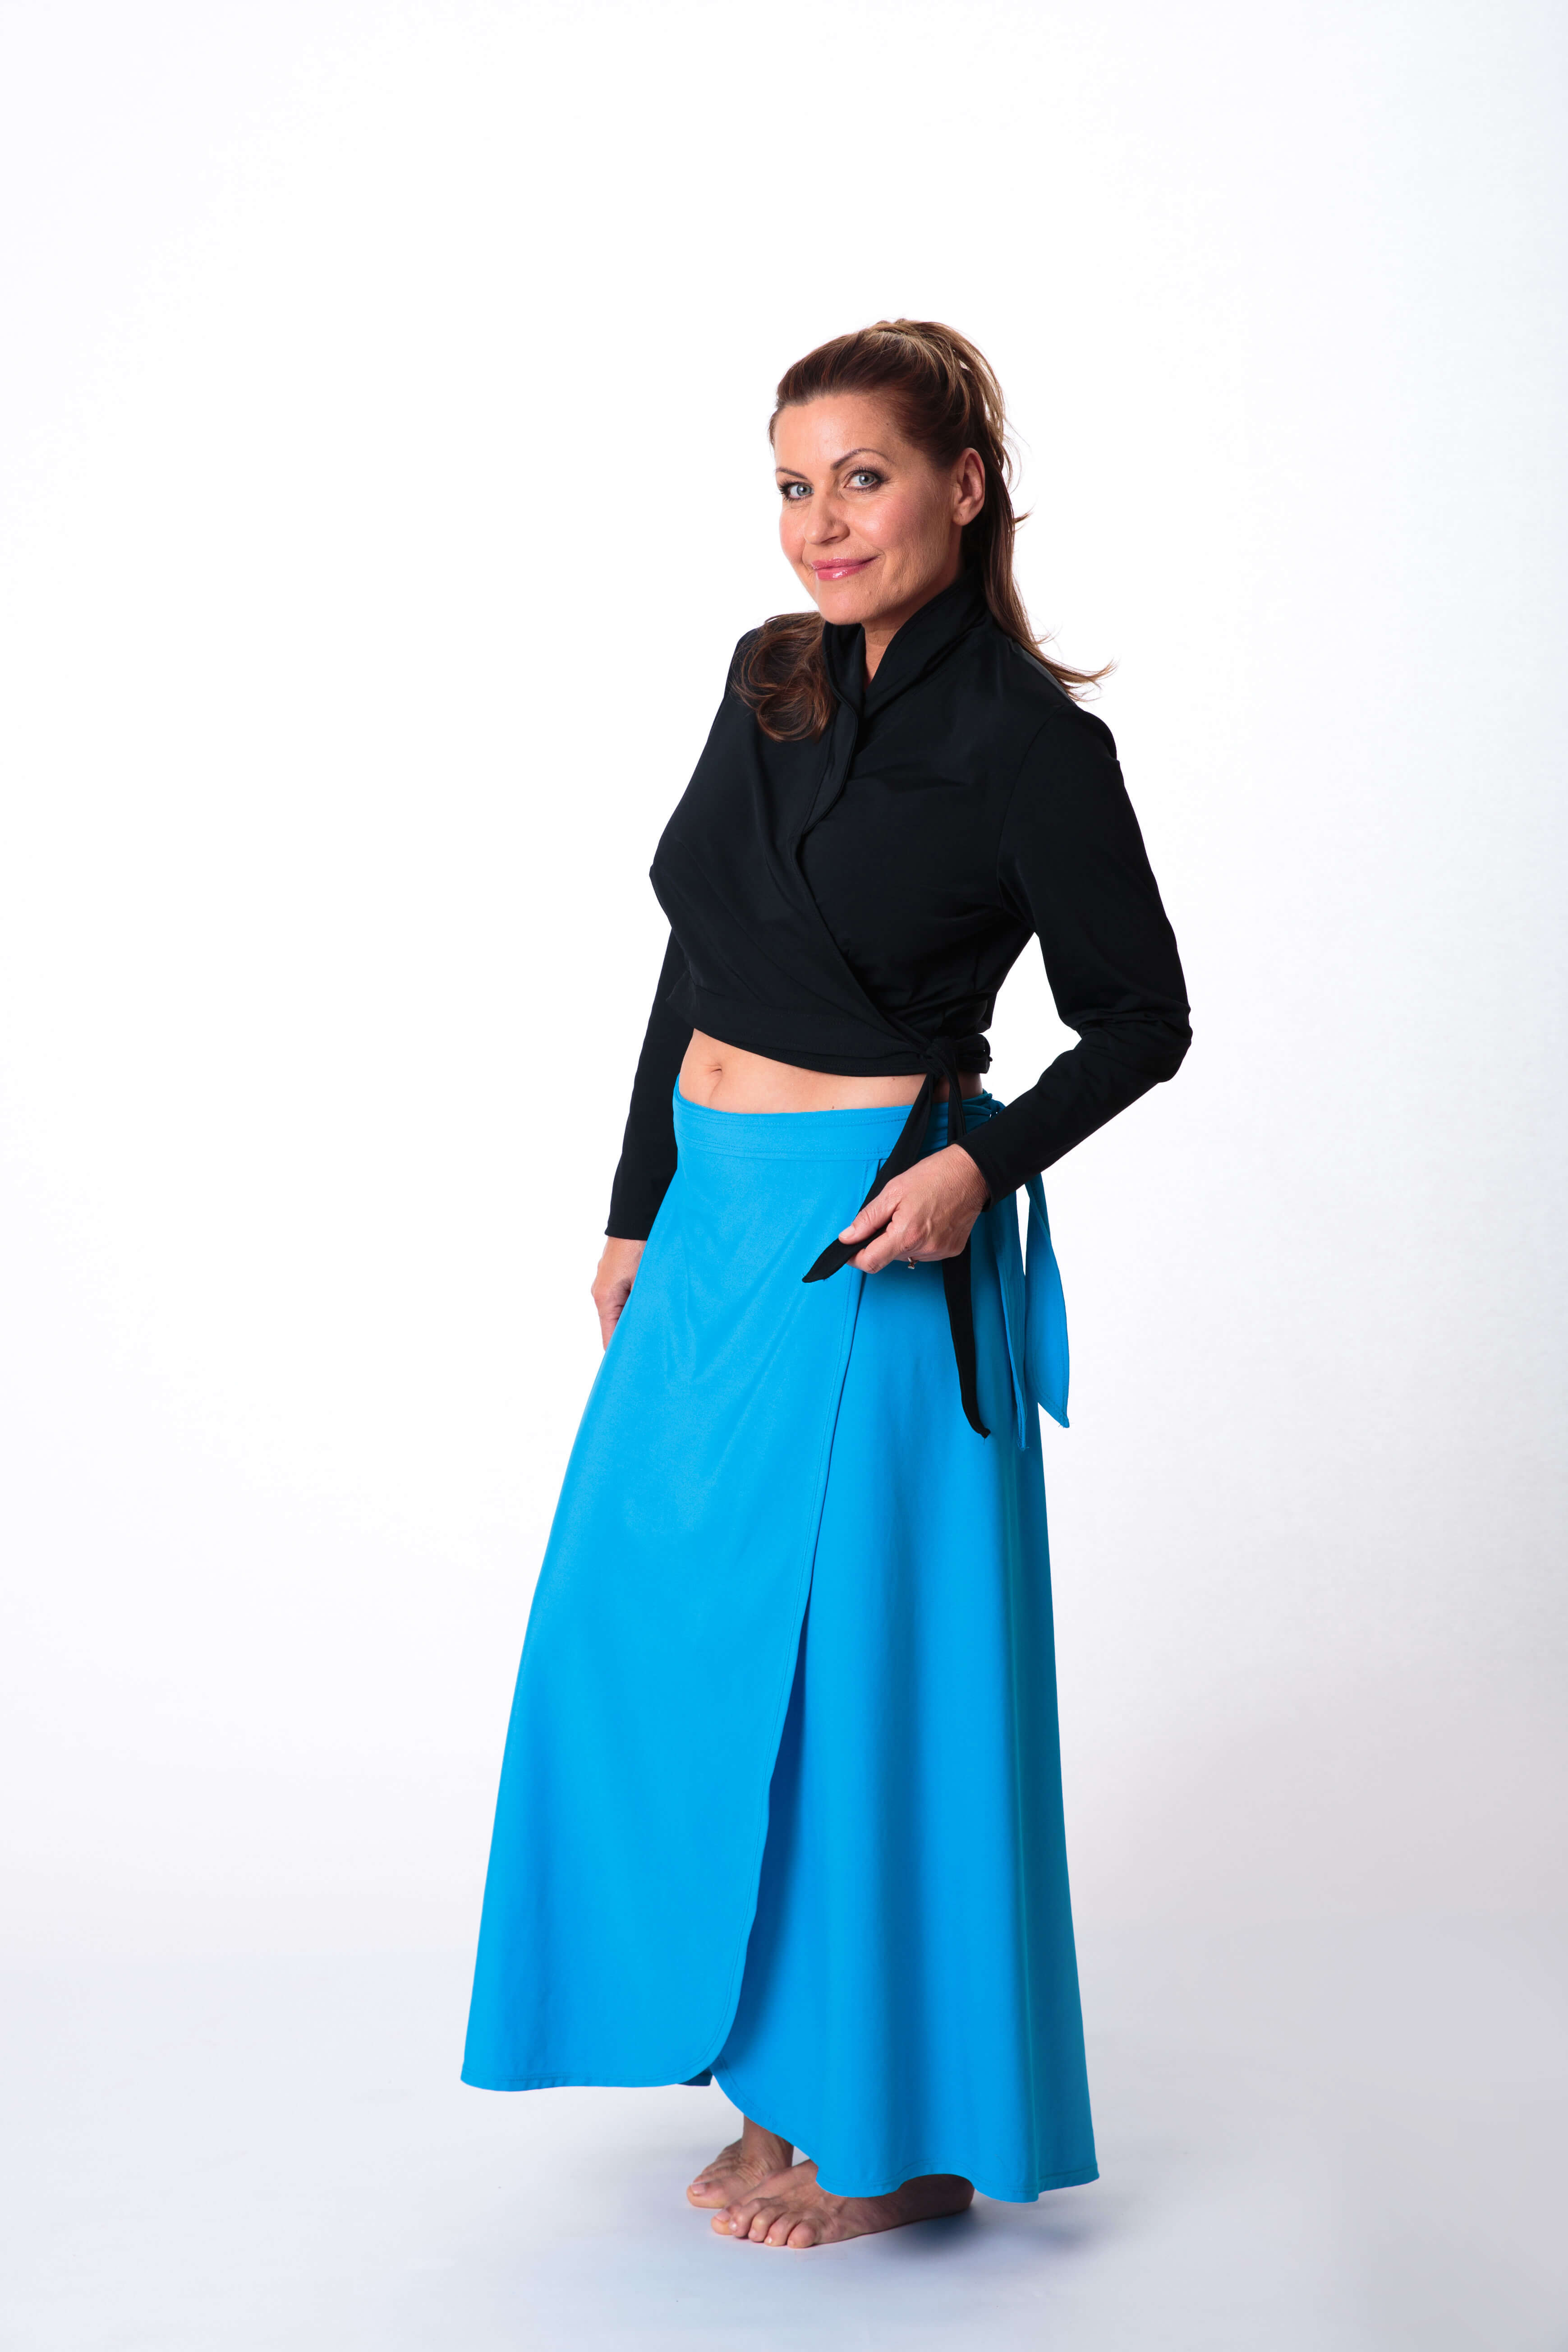 50-upf-sun-protective-shirt-and-skirt